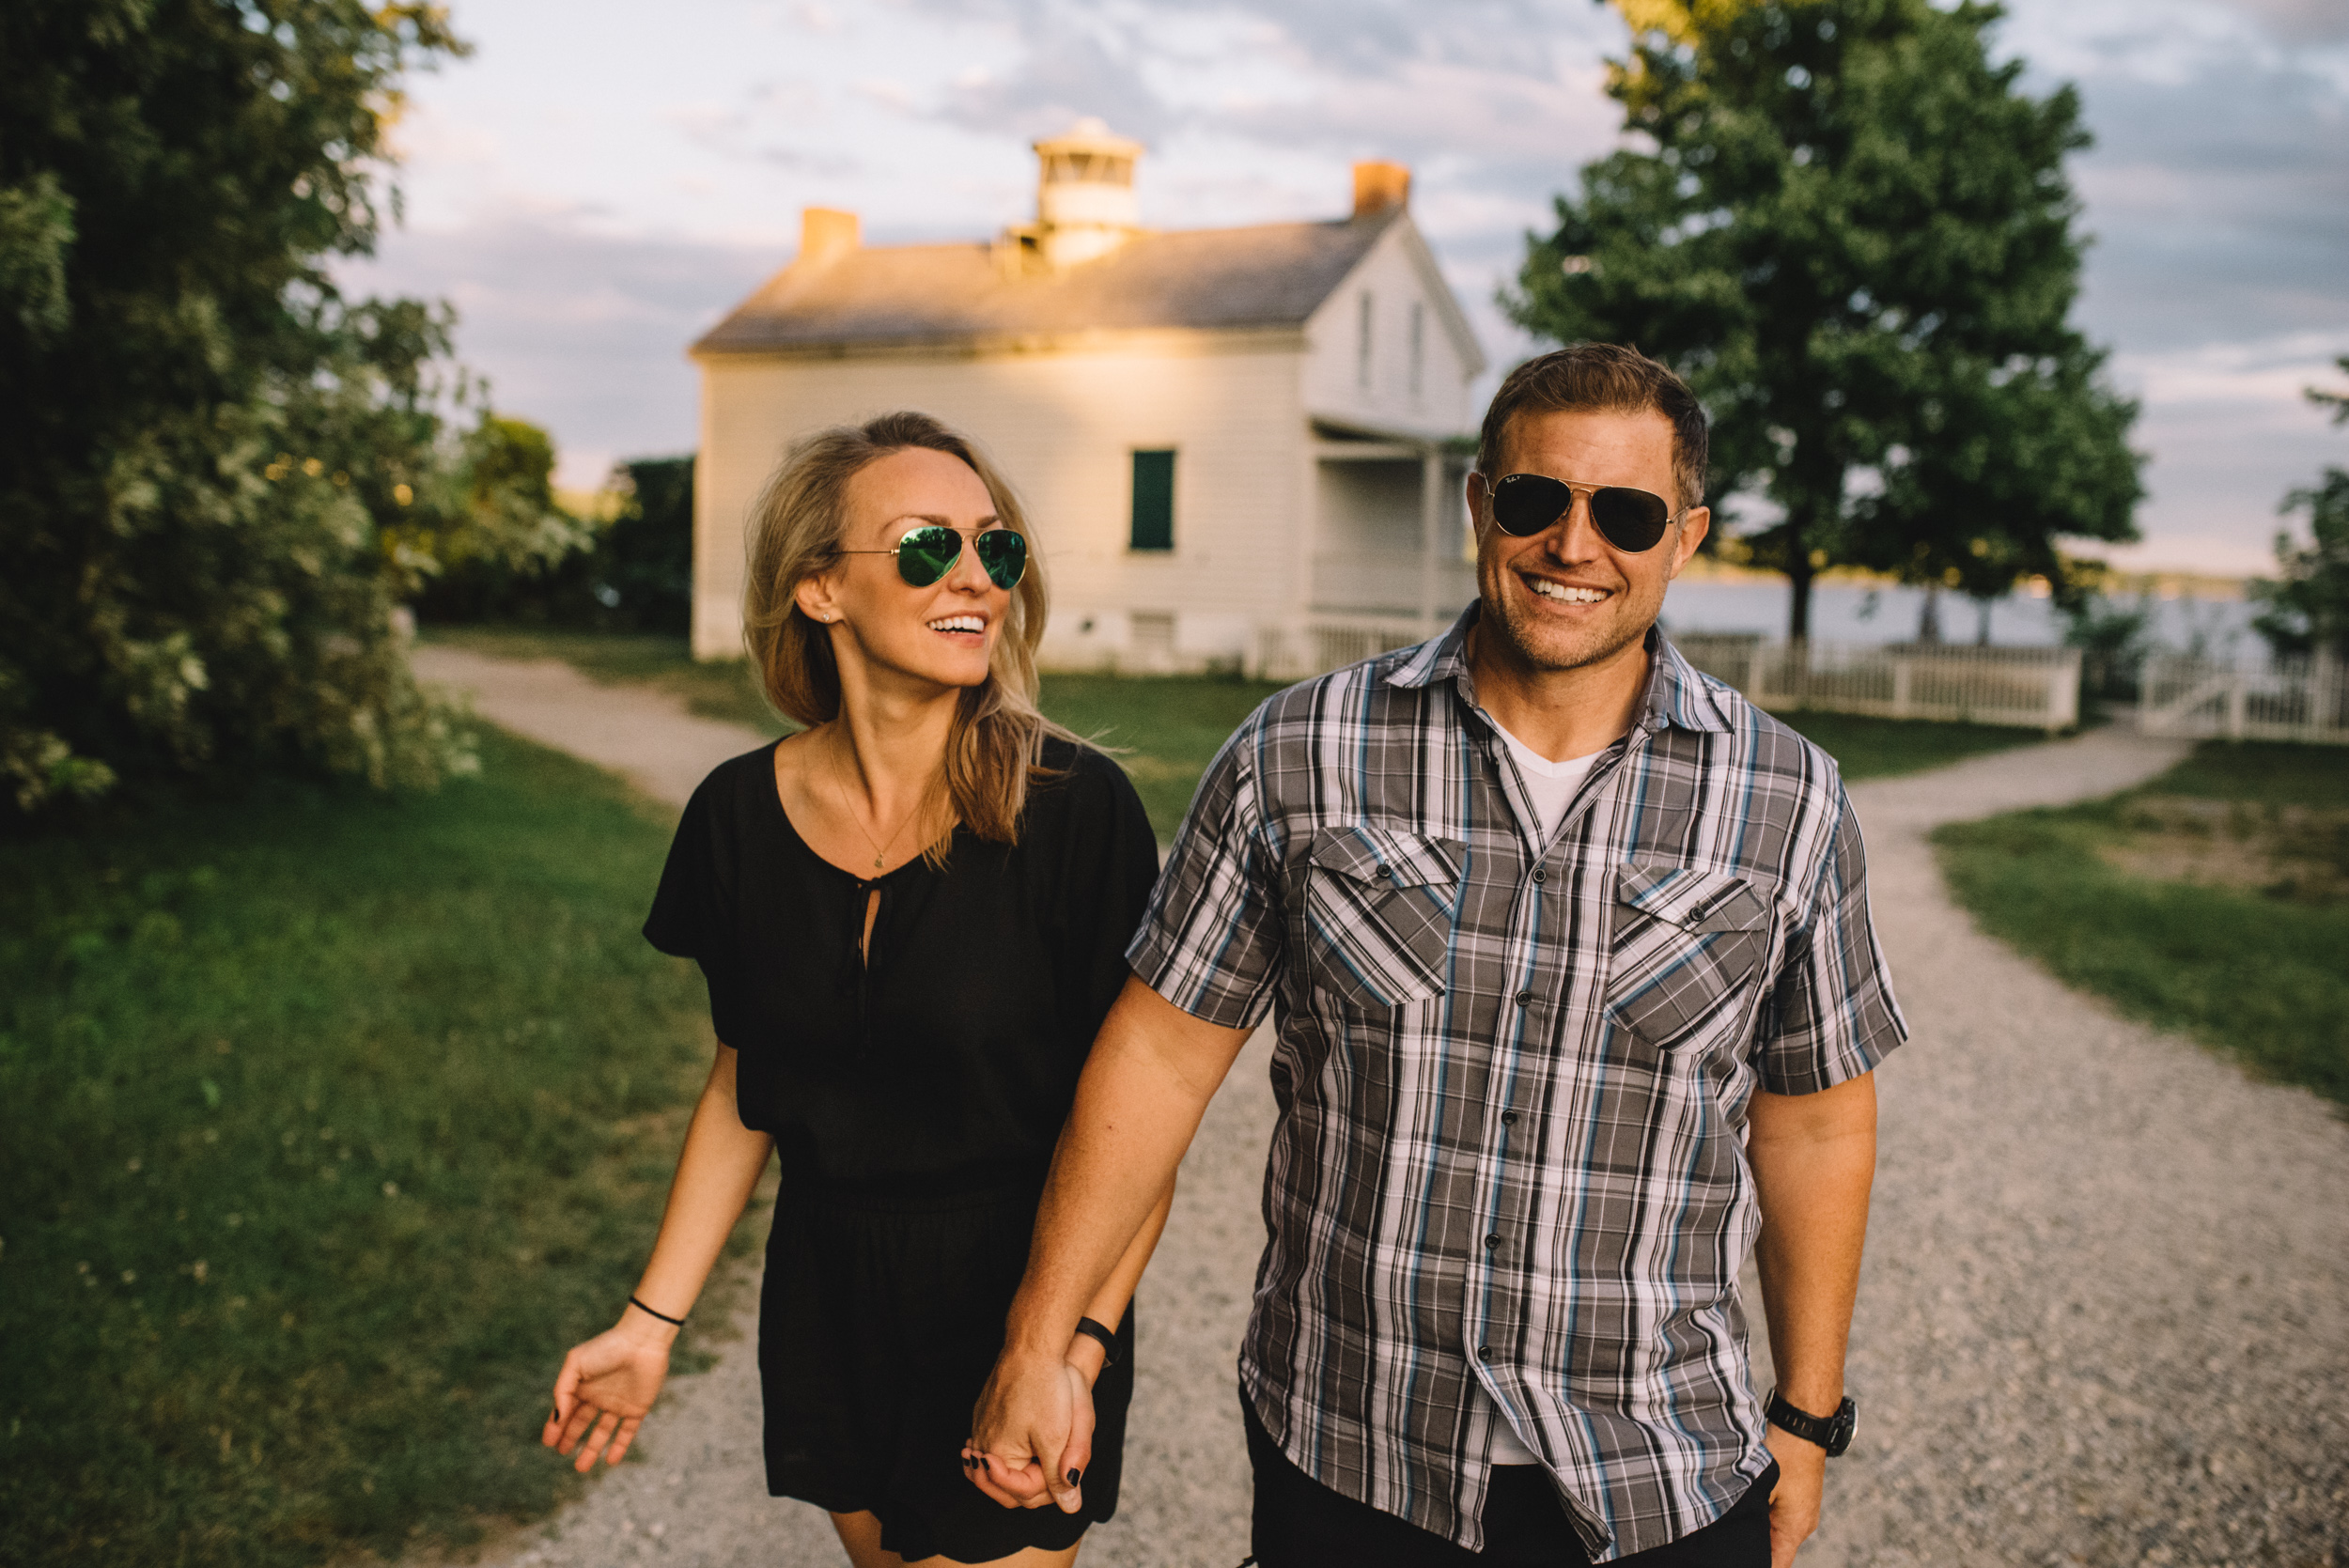 old town alexandria engagement session margaret and cody-16.jpg